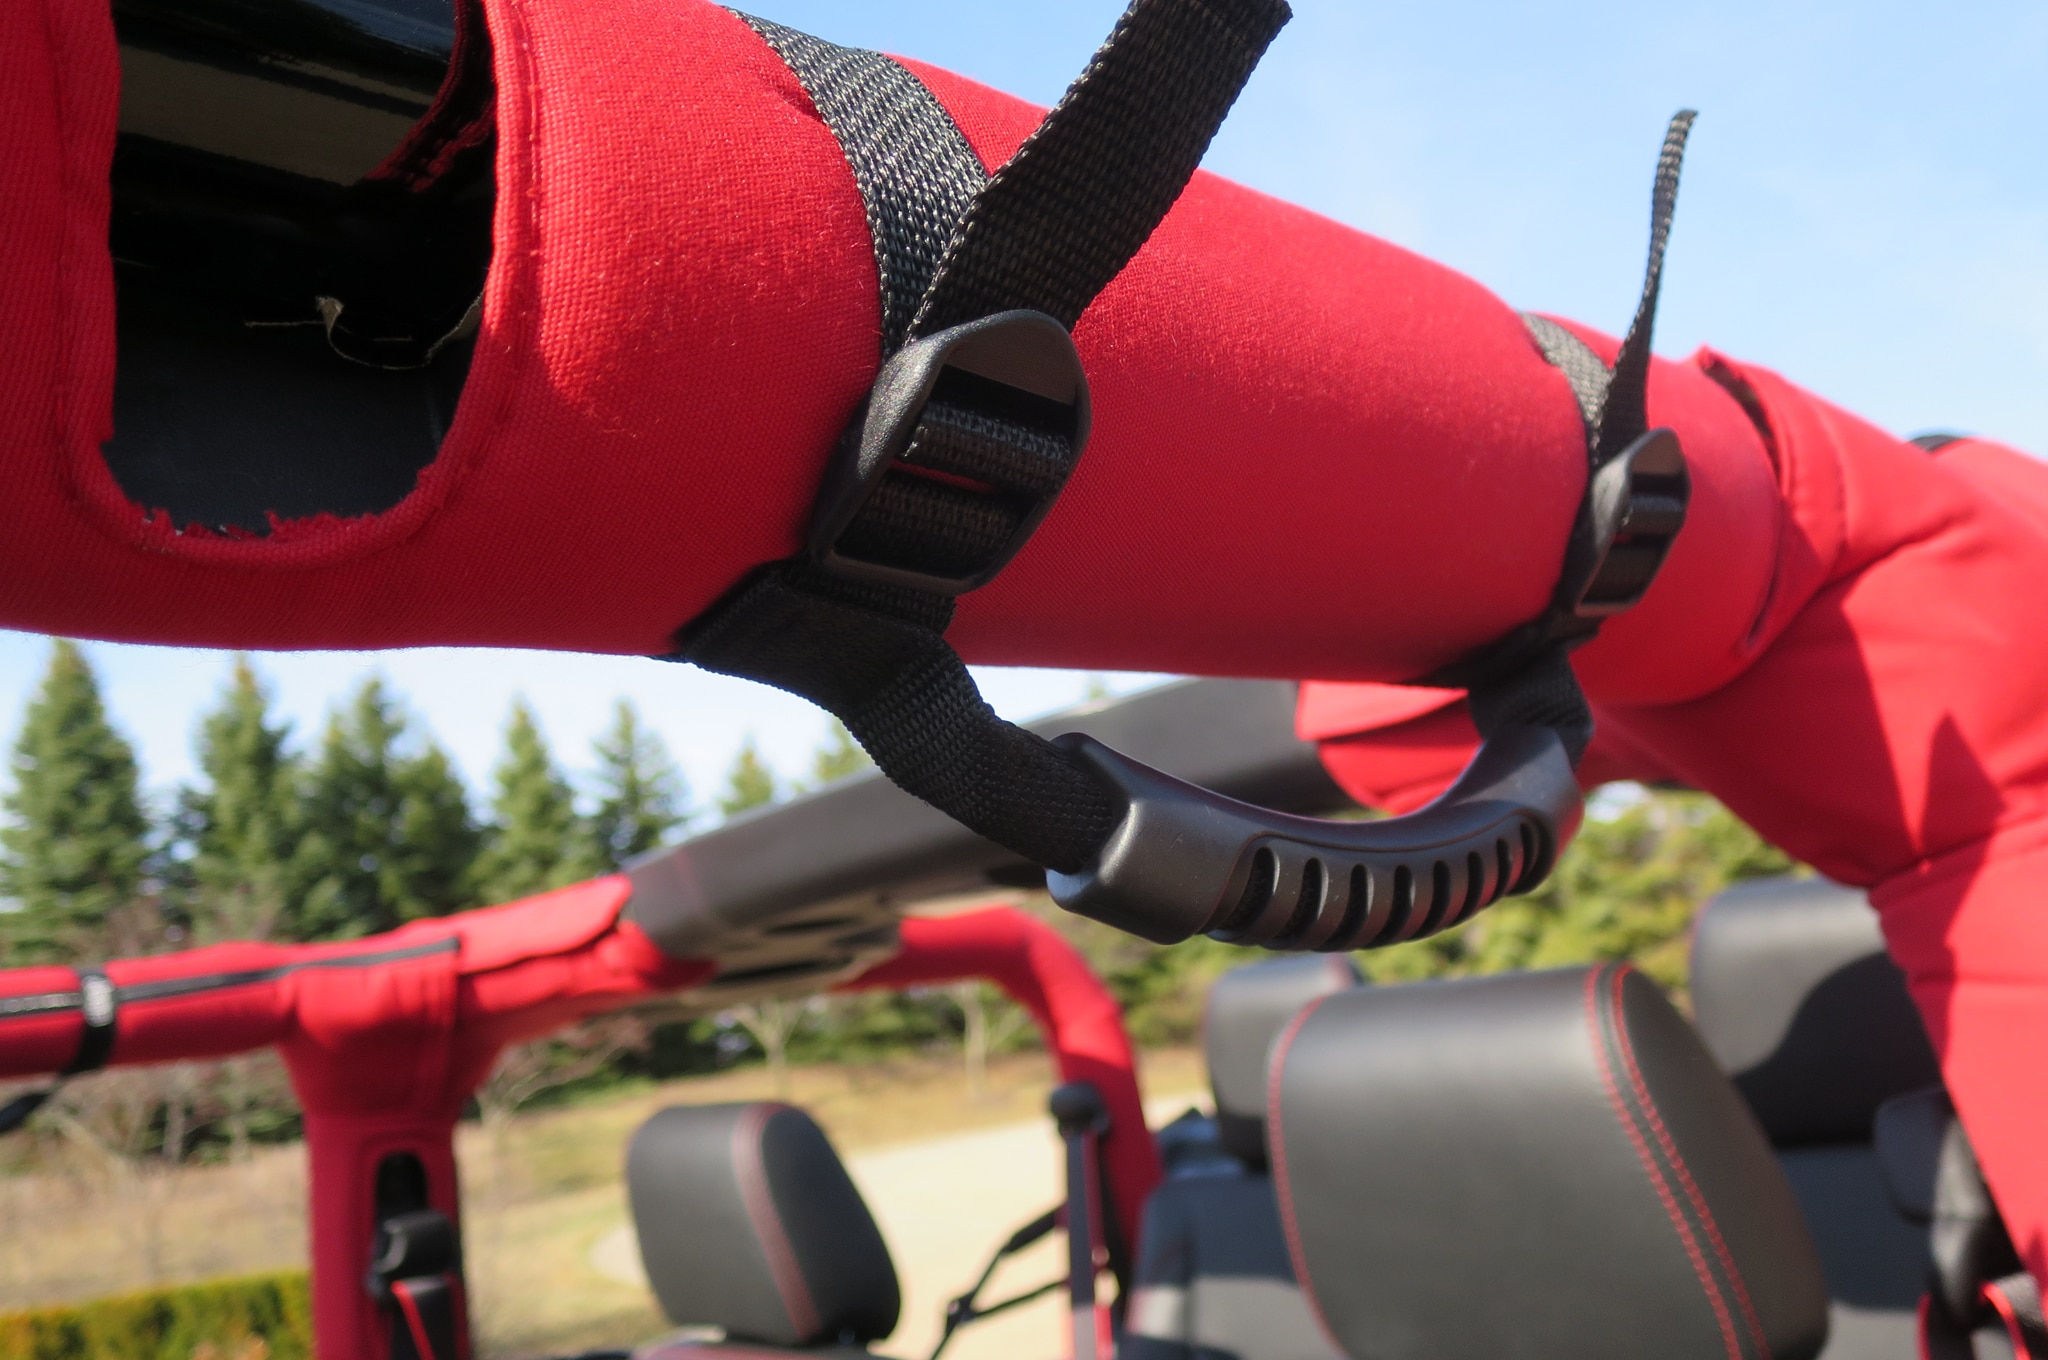 Jeep Wrangler Level Red Concept strap handles